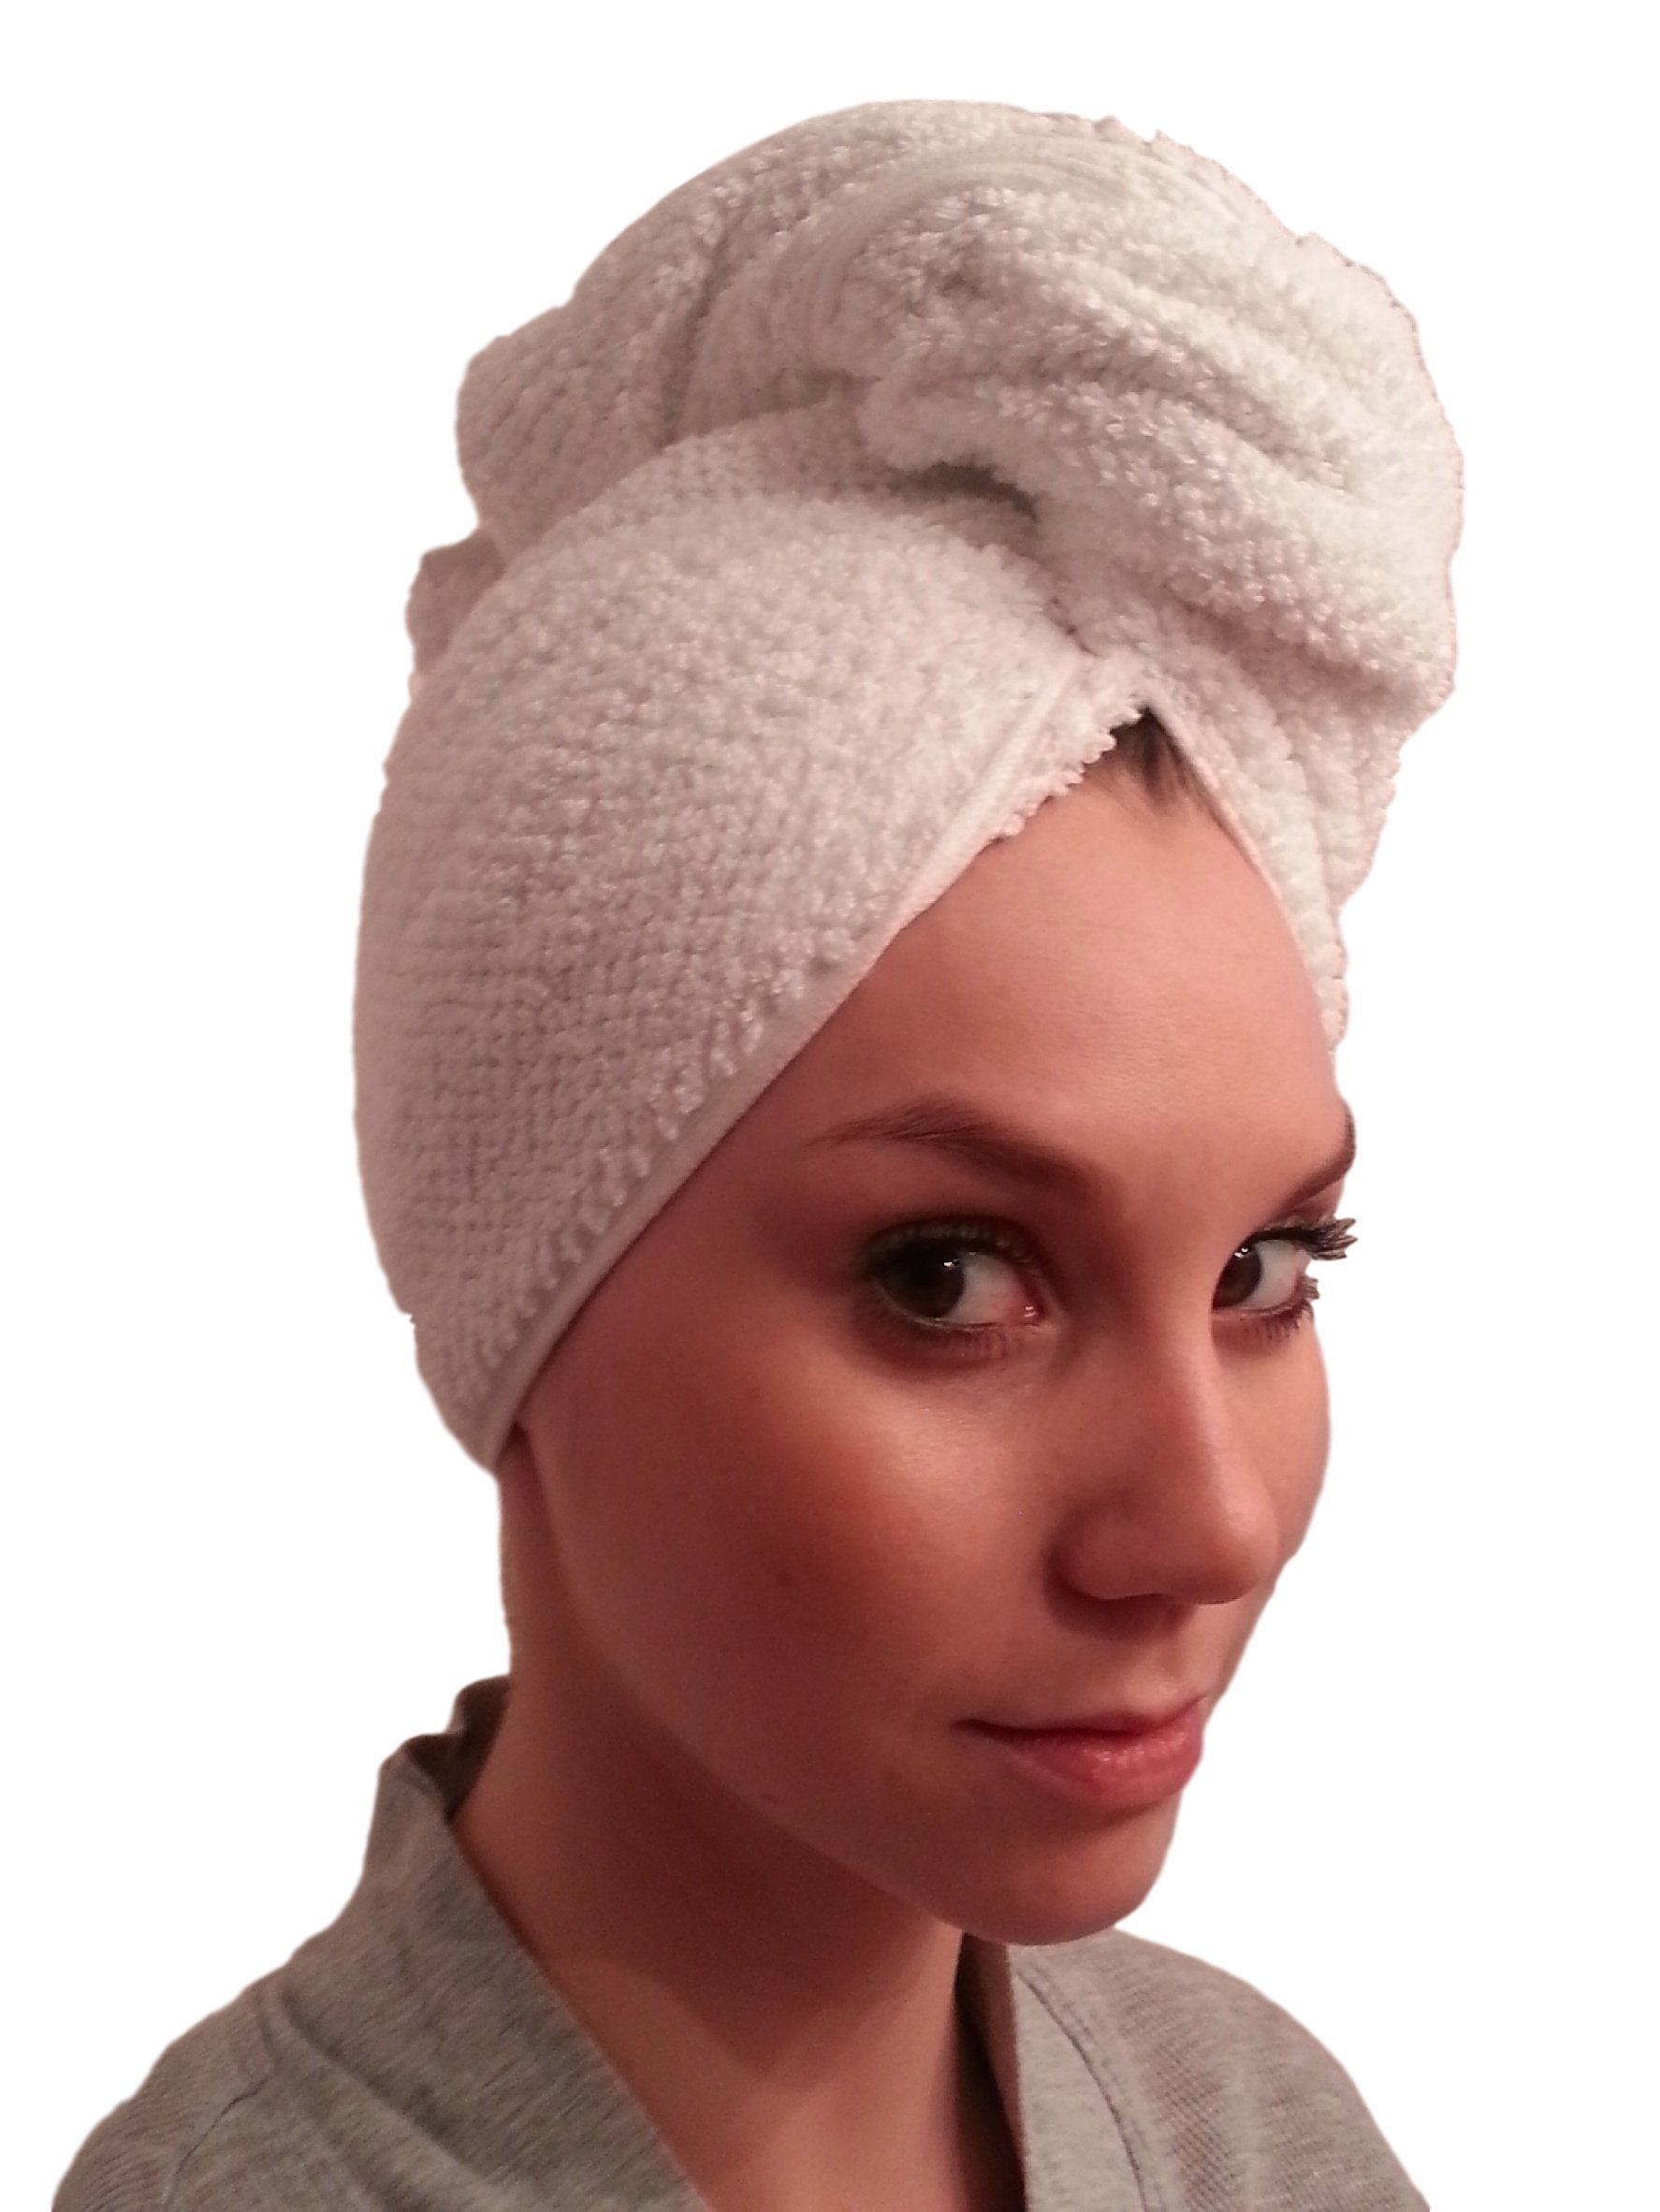 Premium Cotton Bath Hair Wrap, Hair Drying Towel, Hair Towel, Twist Wrap Cap - White